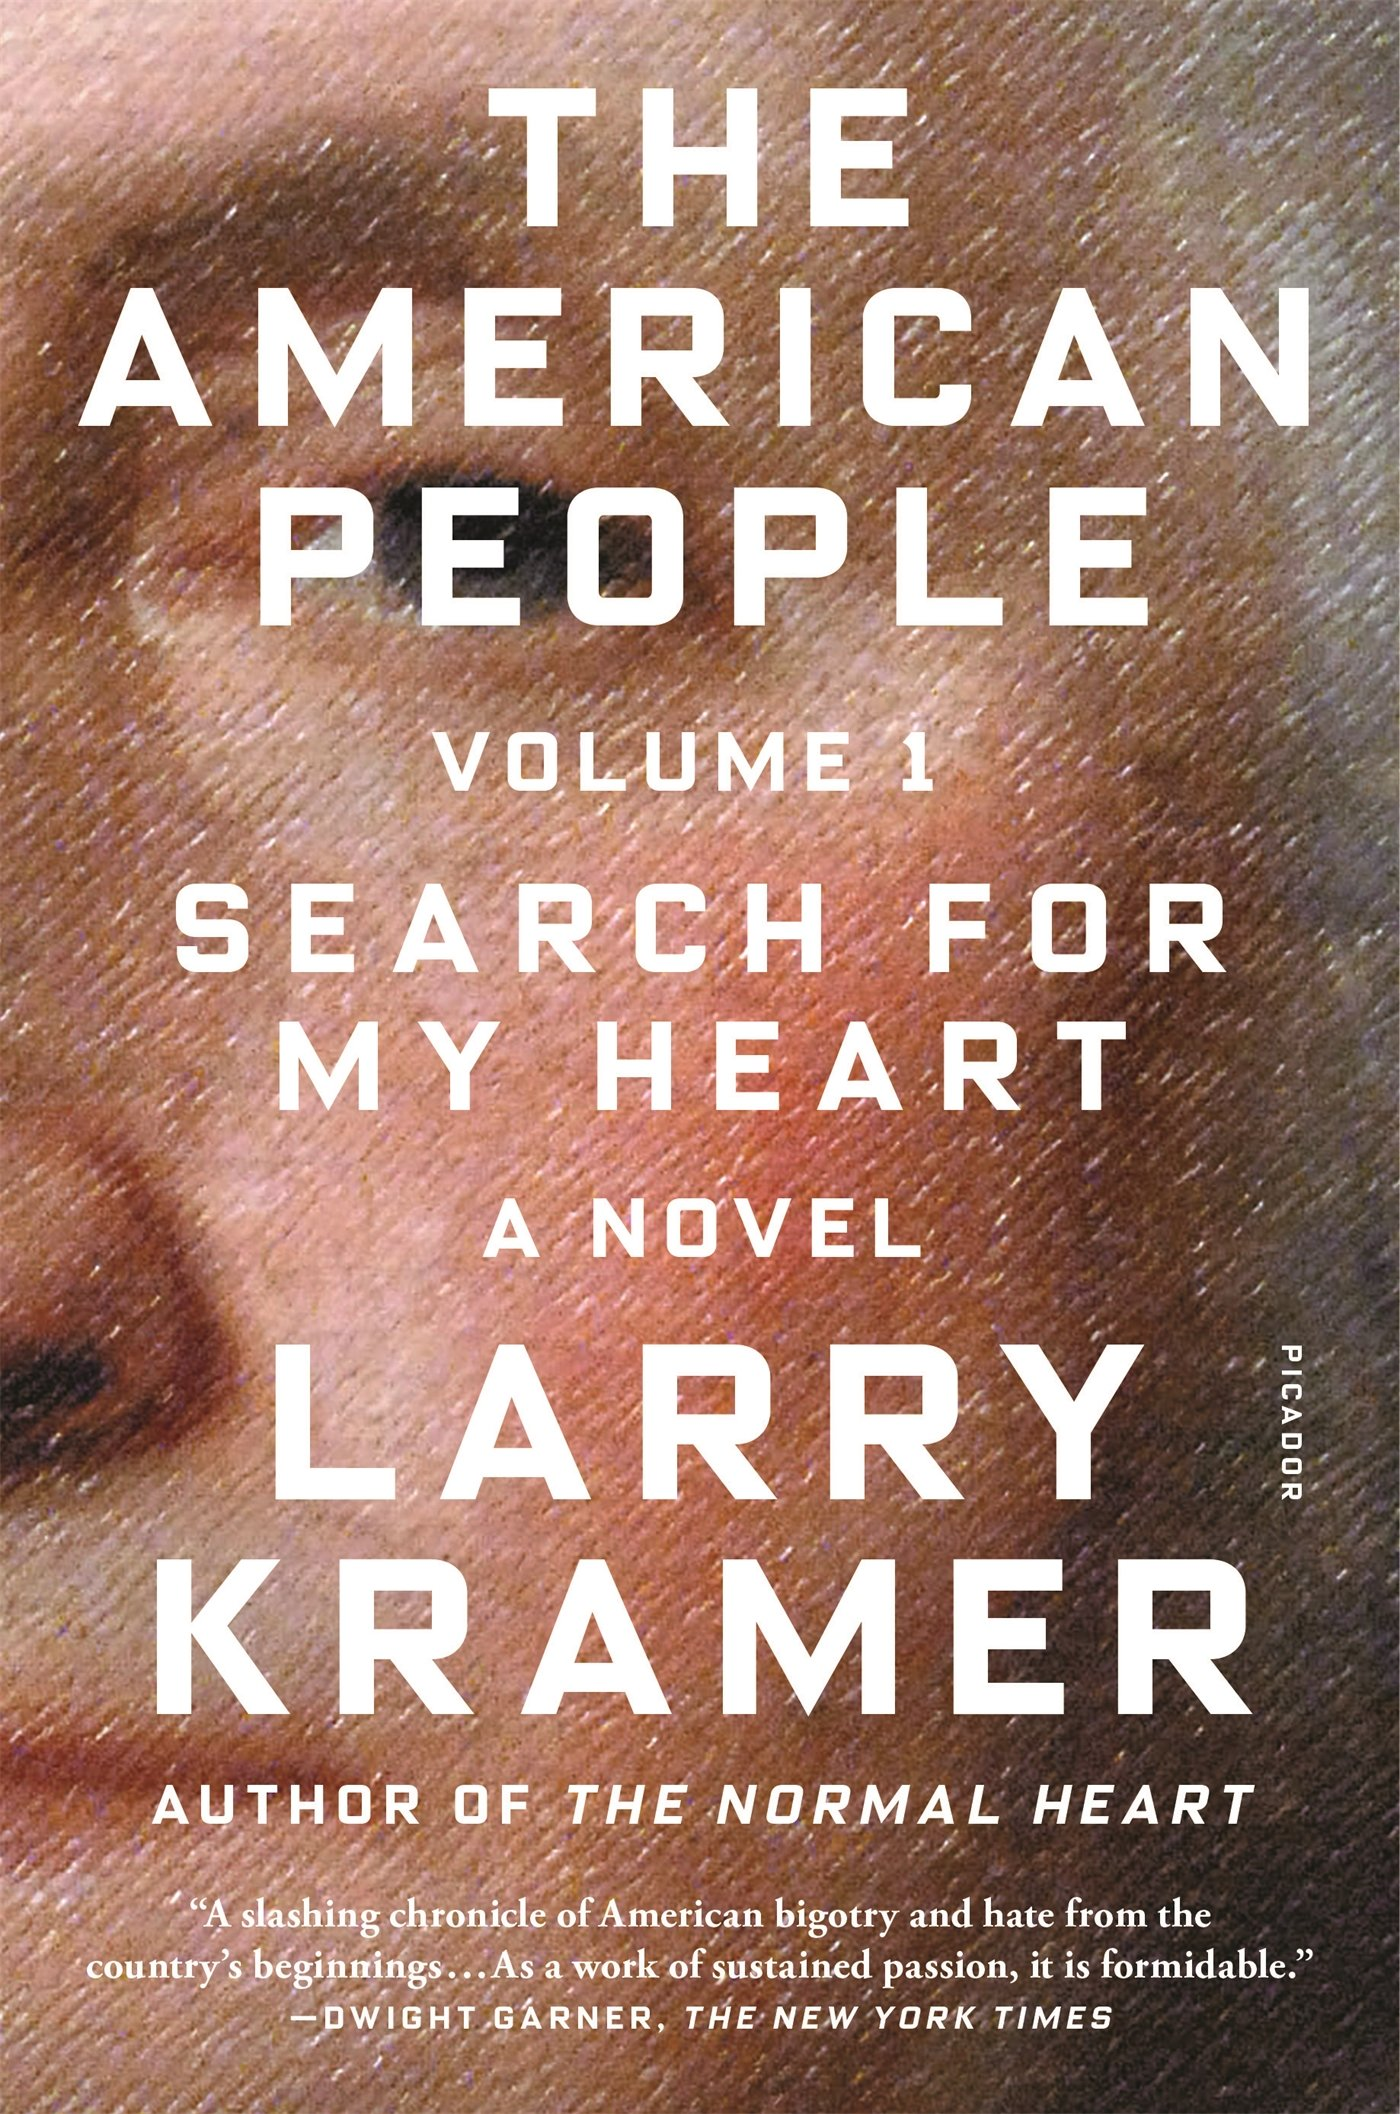 a0a8eb96fe1c3 Amazon.com: The American People: Volume 1: Search for My Heart: A ...